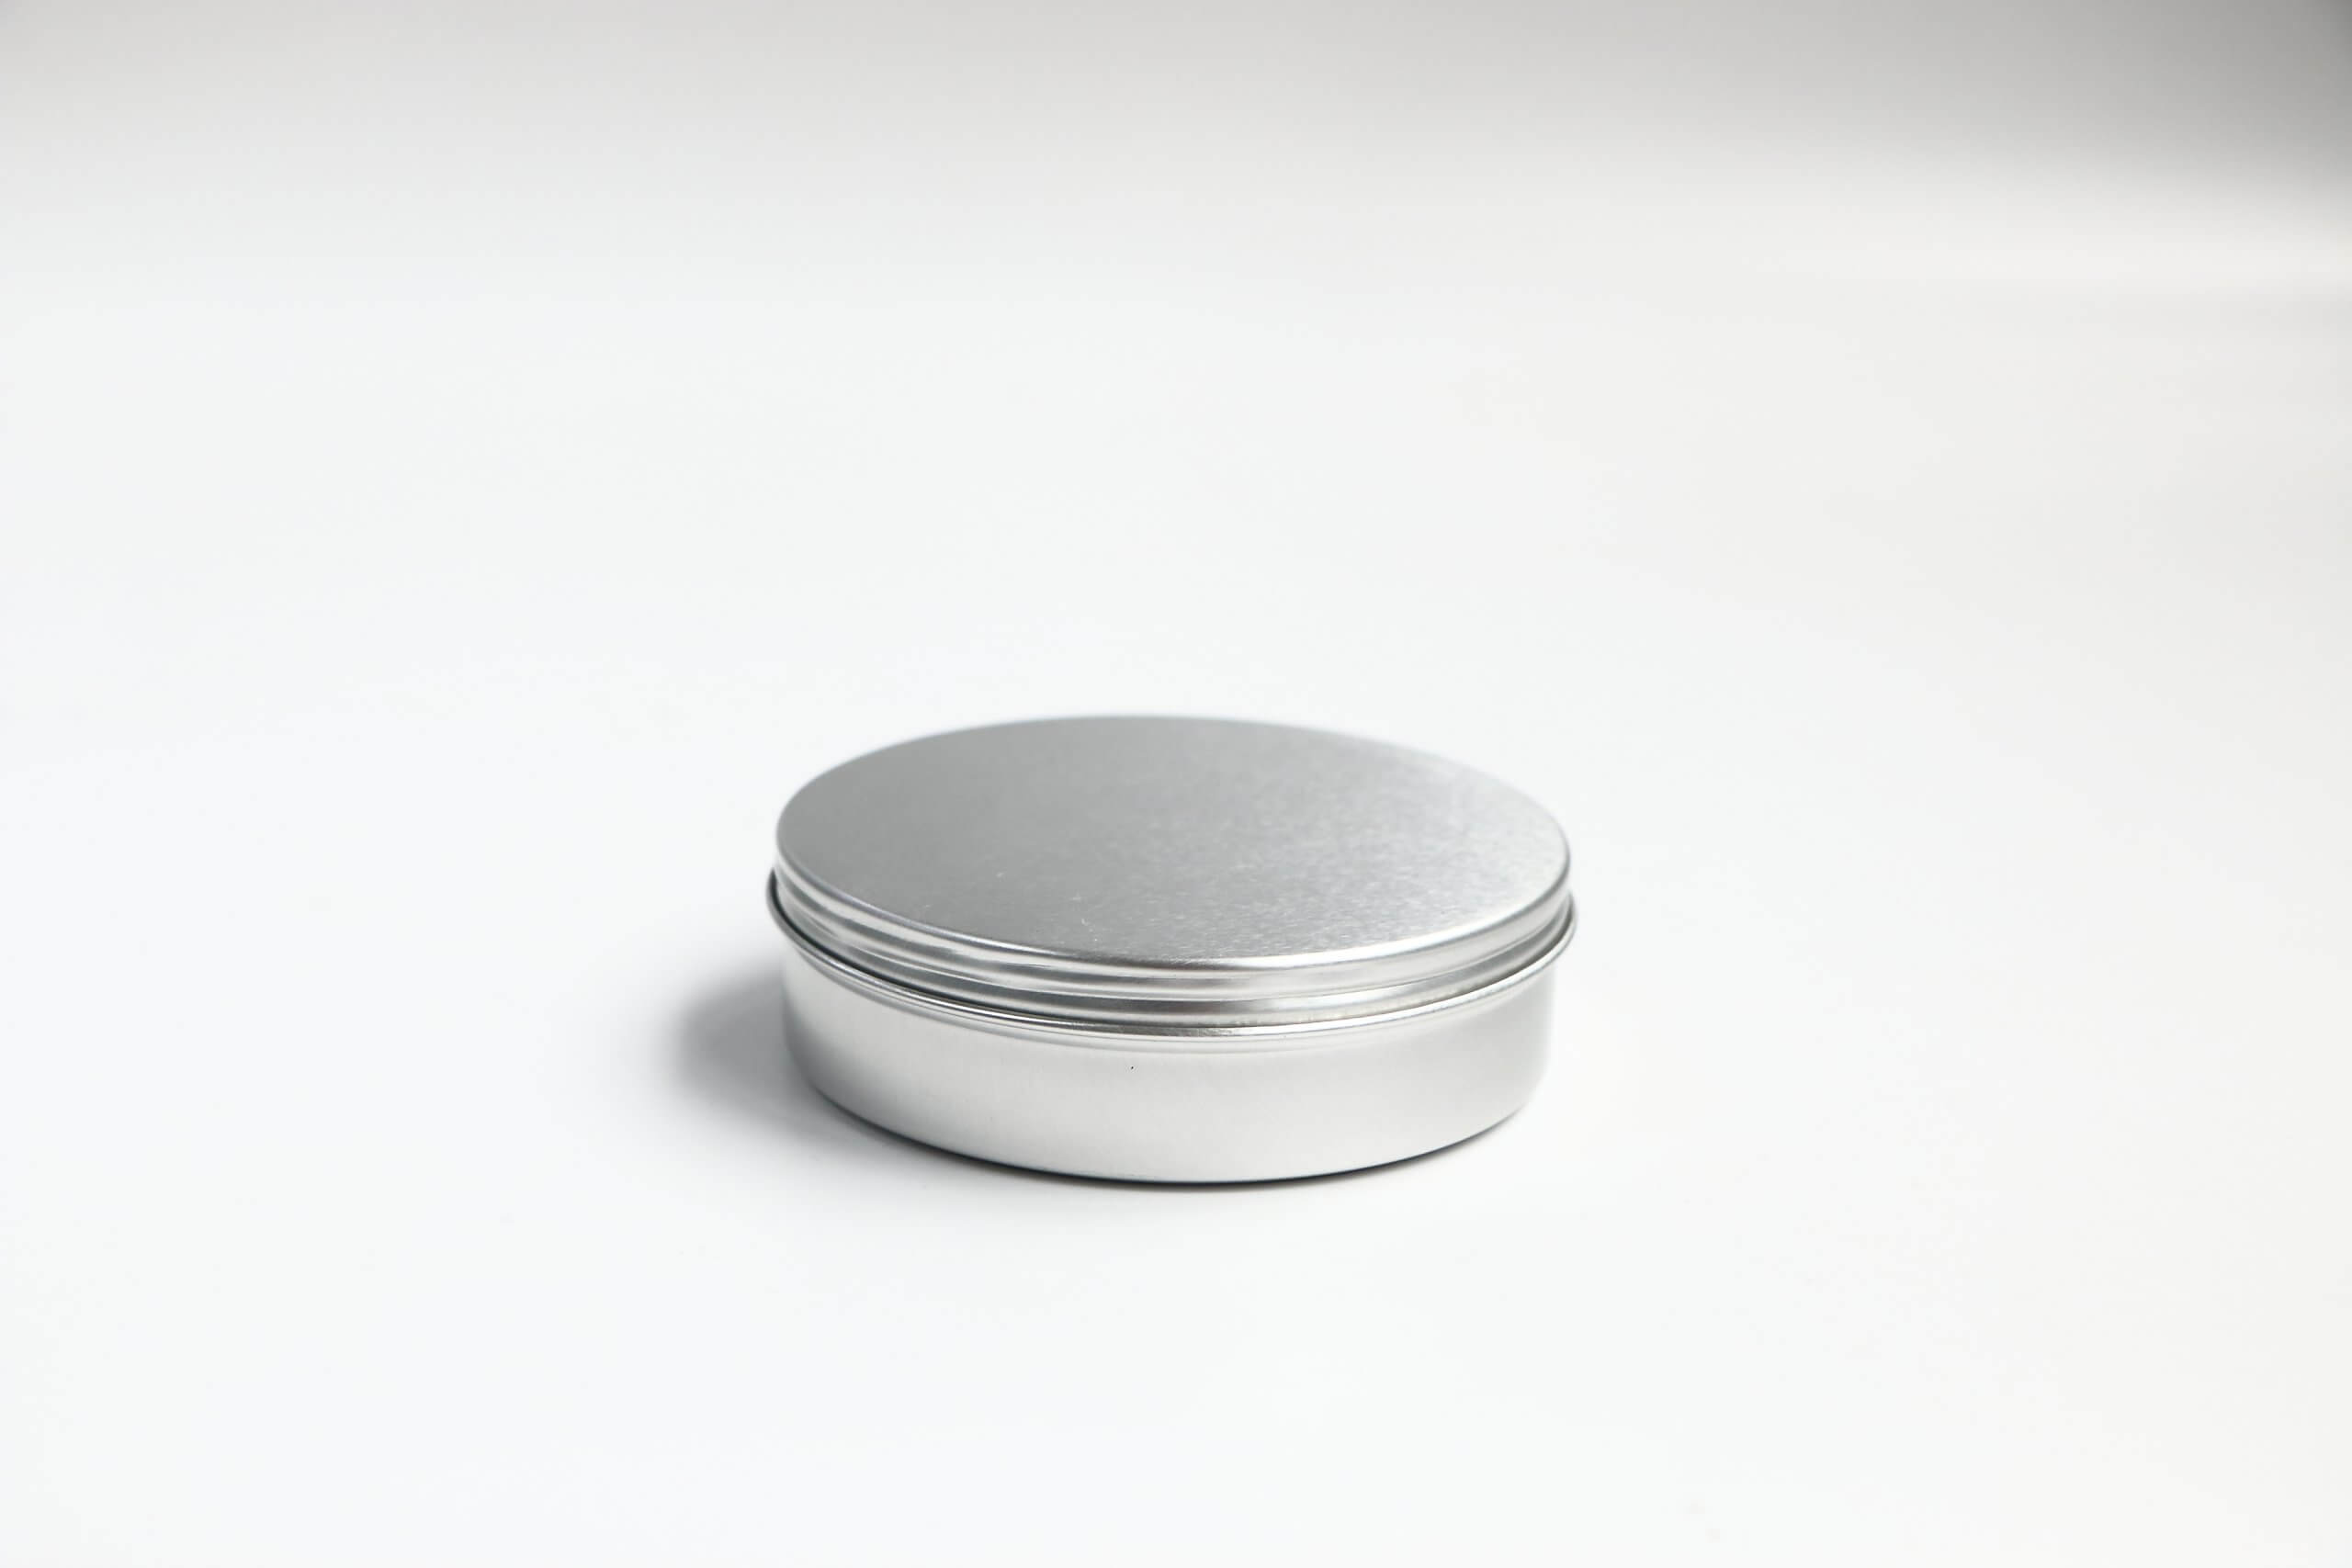 YX AL285 scaled - Aluminum Tin Jars Round Pot Screw Cap Lid for Lip Balm Nail Art Cream Cosmetic Make Up Eye Shadow Powder Pot Jar Tin Case Container